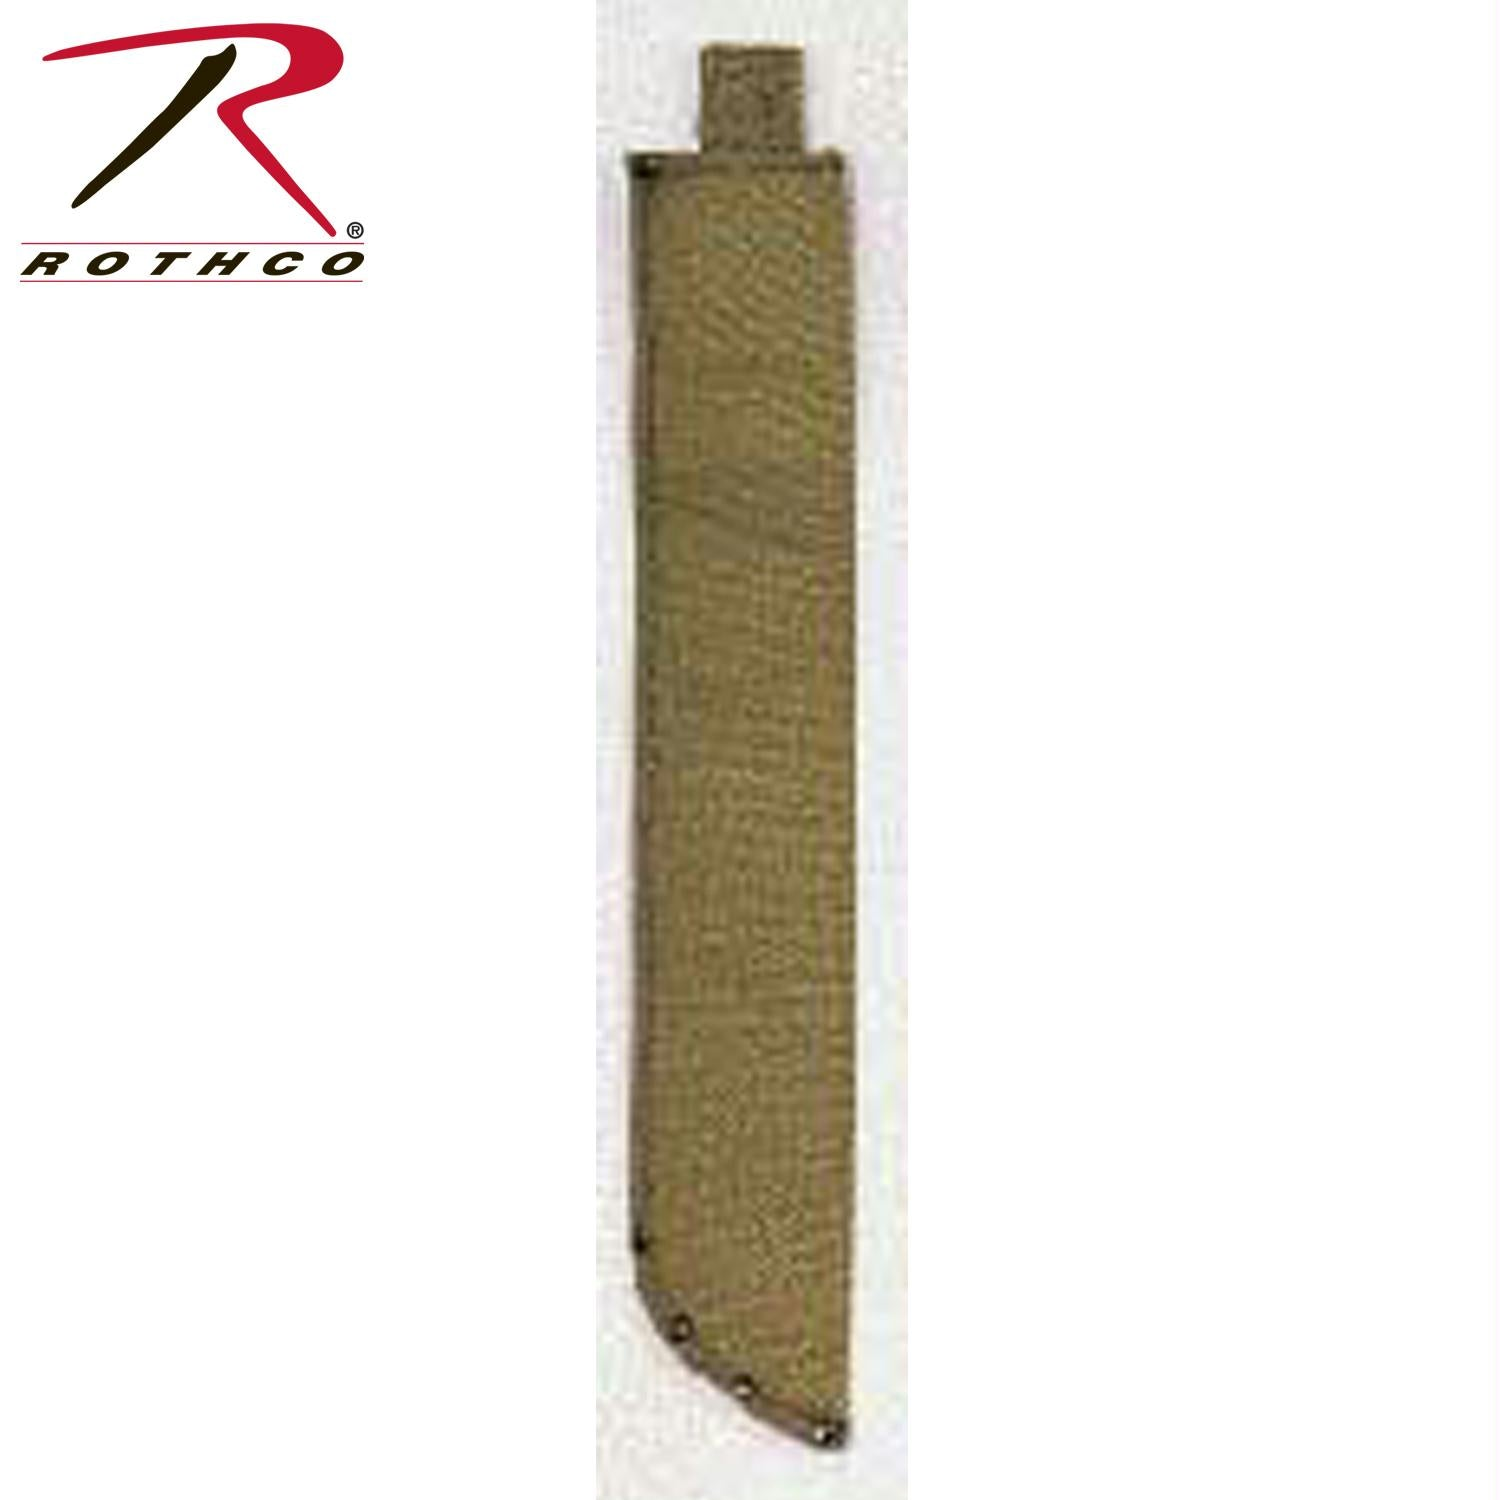 Rothco O.D. Canvas Machete Sheath - 22 Inches